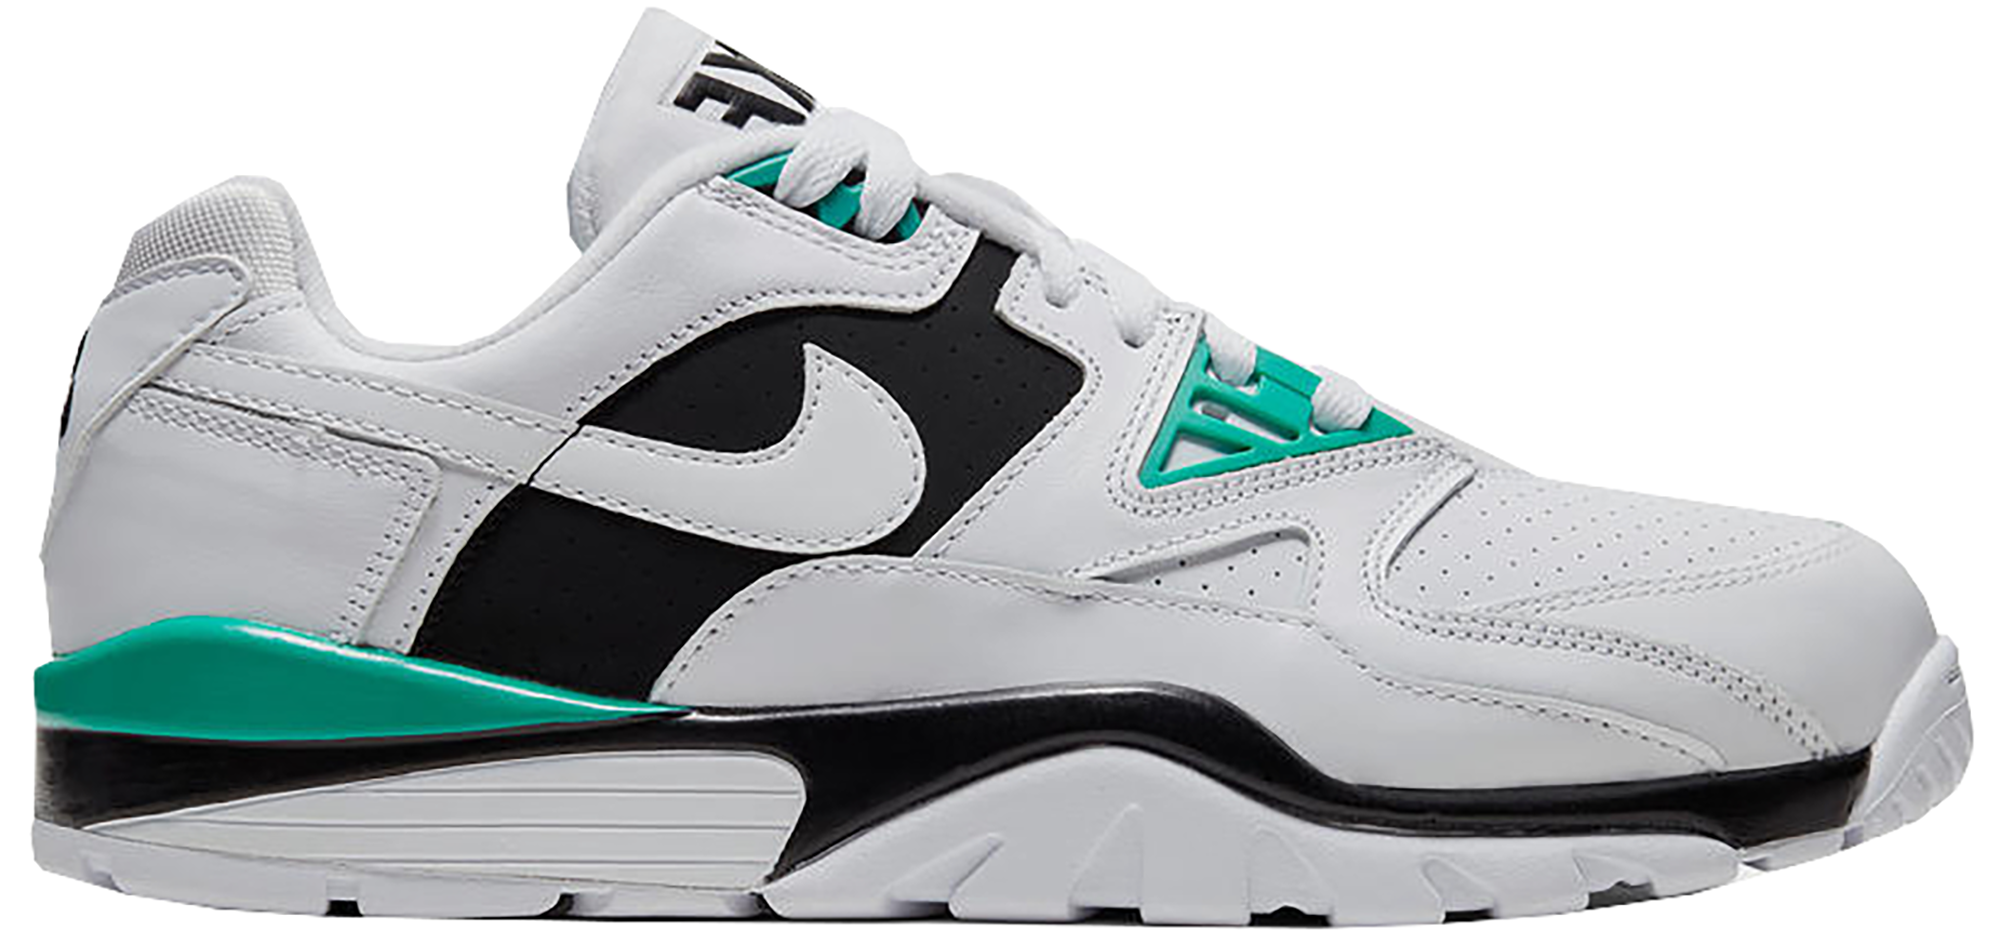 Nike Air Cross Trainer 3 Low White